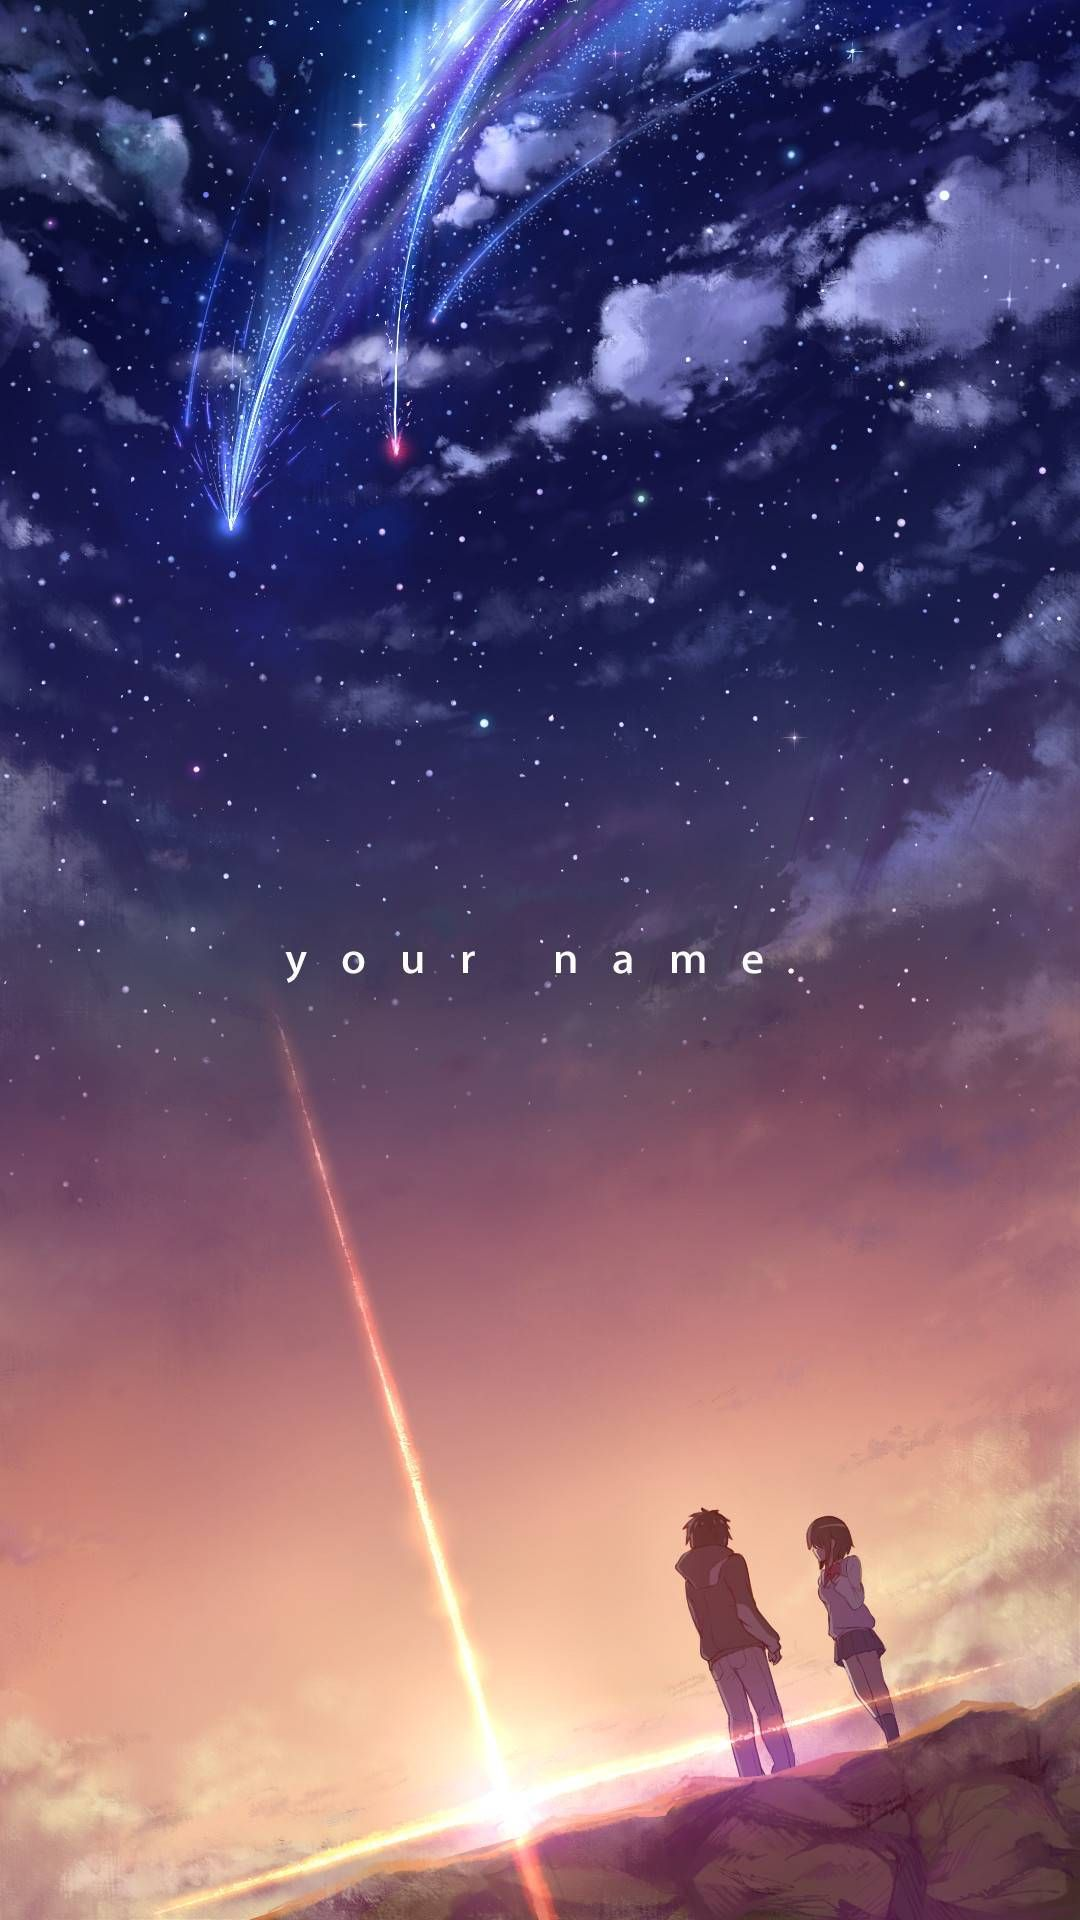 Your Name Wallpaper Iphone Xr : wallpaper, iphone, Wallpaper, Iphone